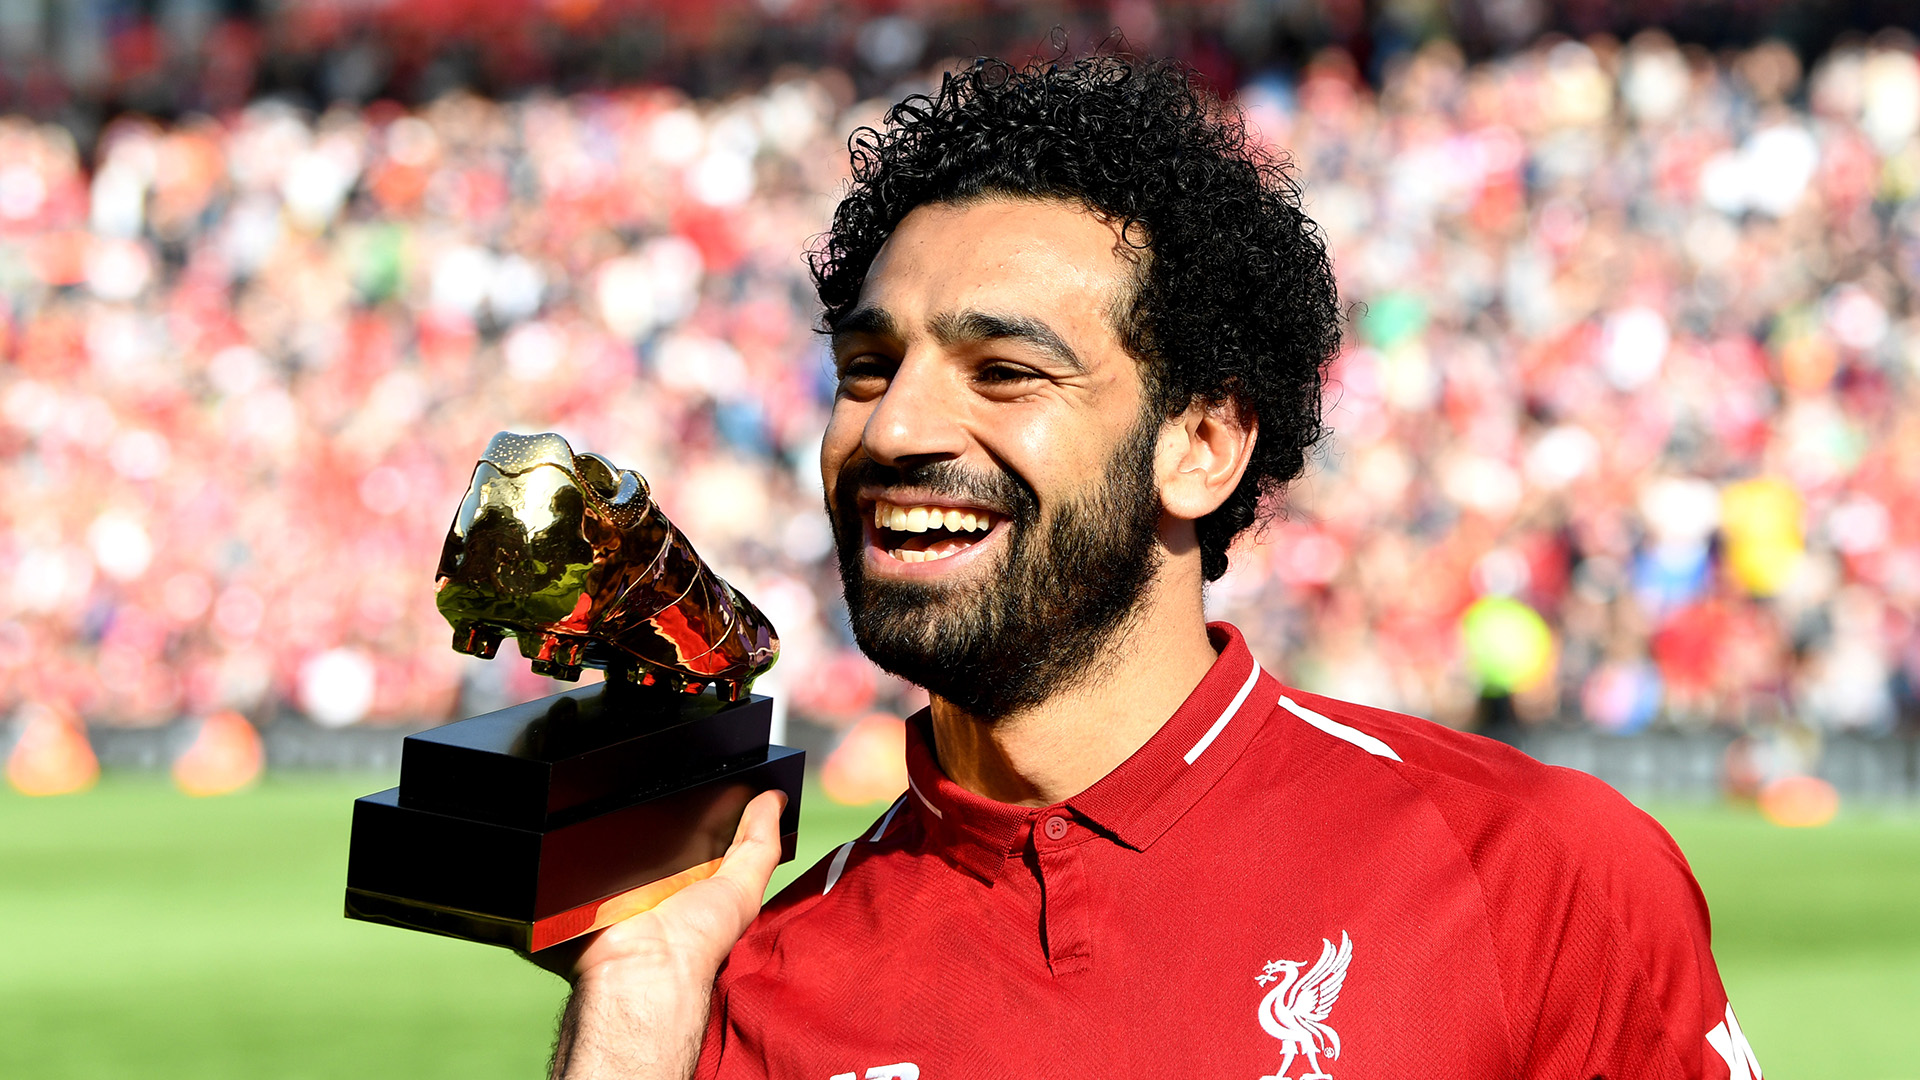 Transfer news &rumours LIVE: Barcelona should sign Salah, says Brazil legend Rivaldo